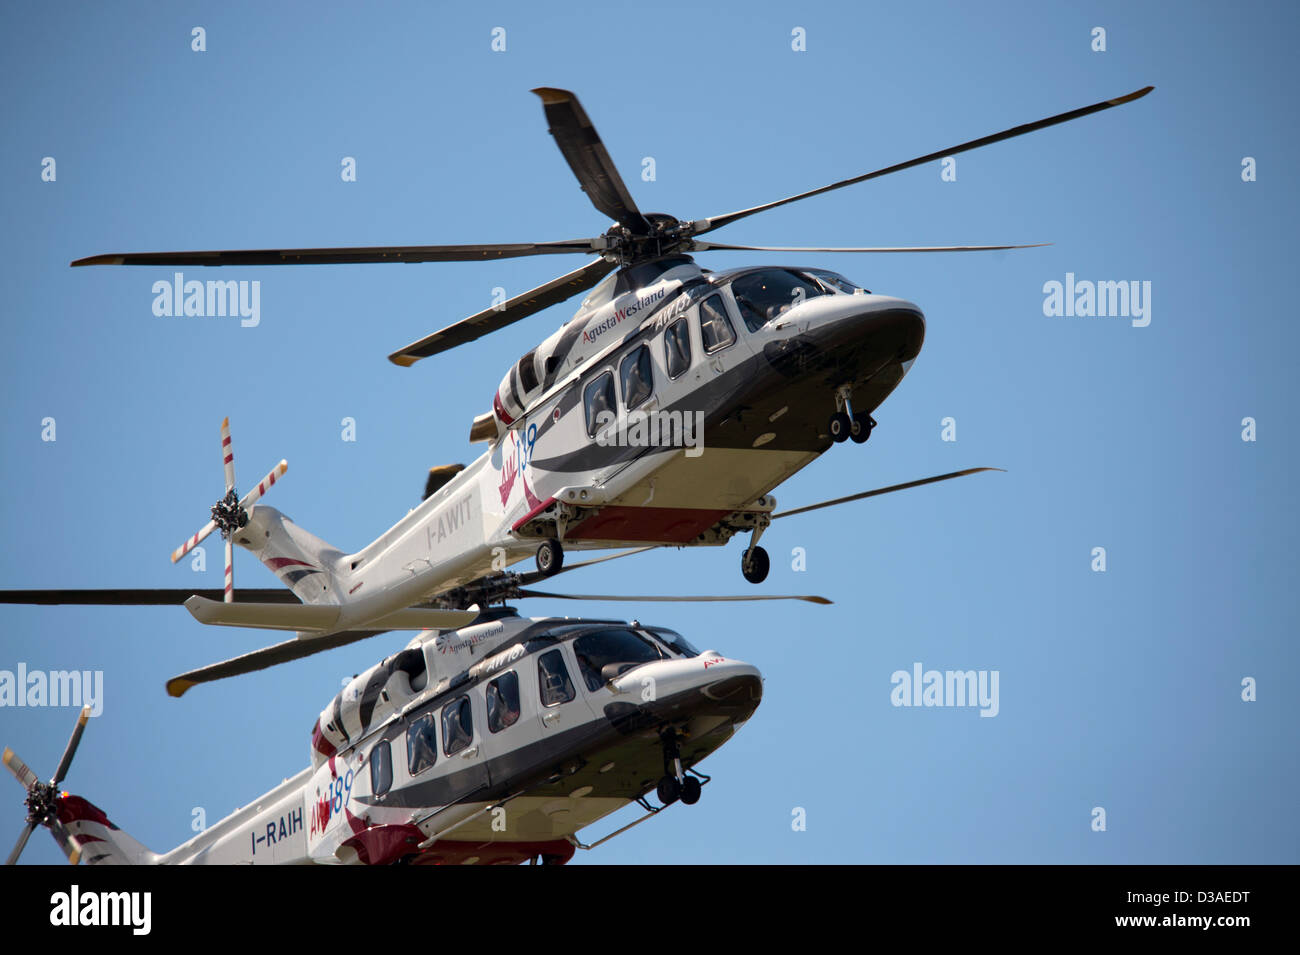 Agusta Westland helicopters flying during the Farnborough Airshow in England Stock Photo